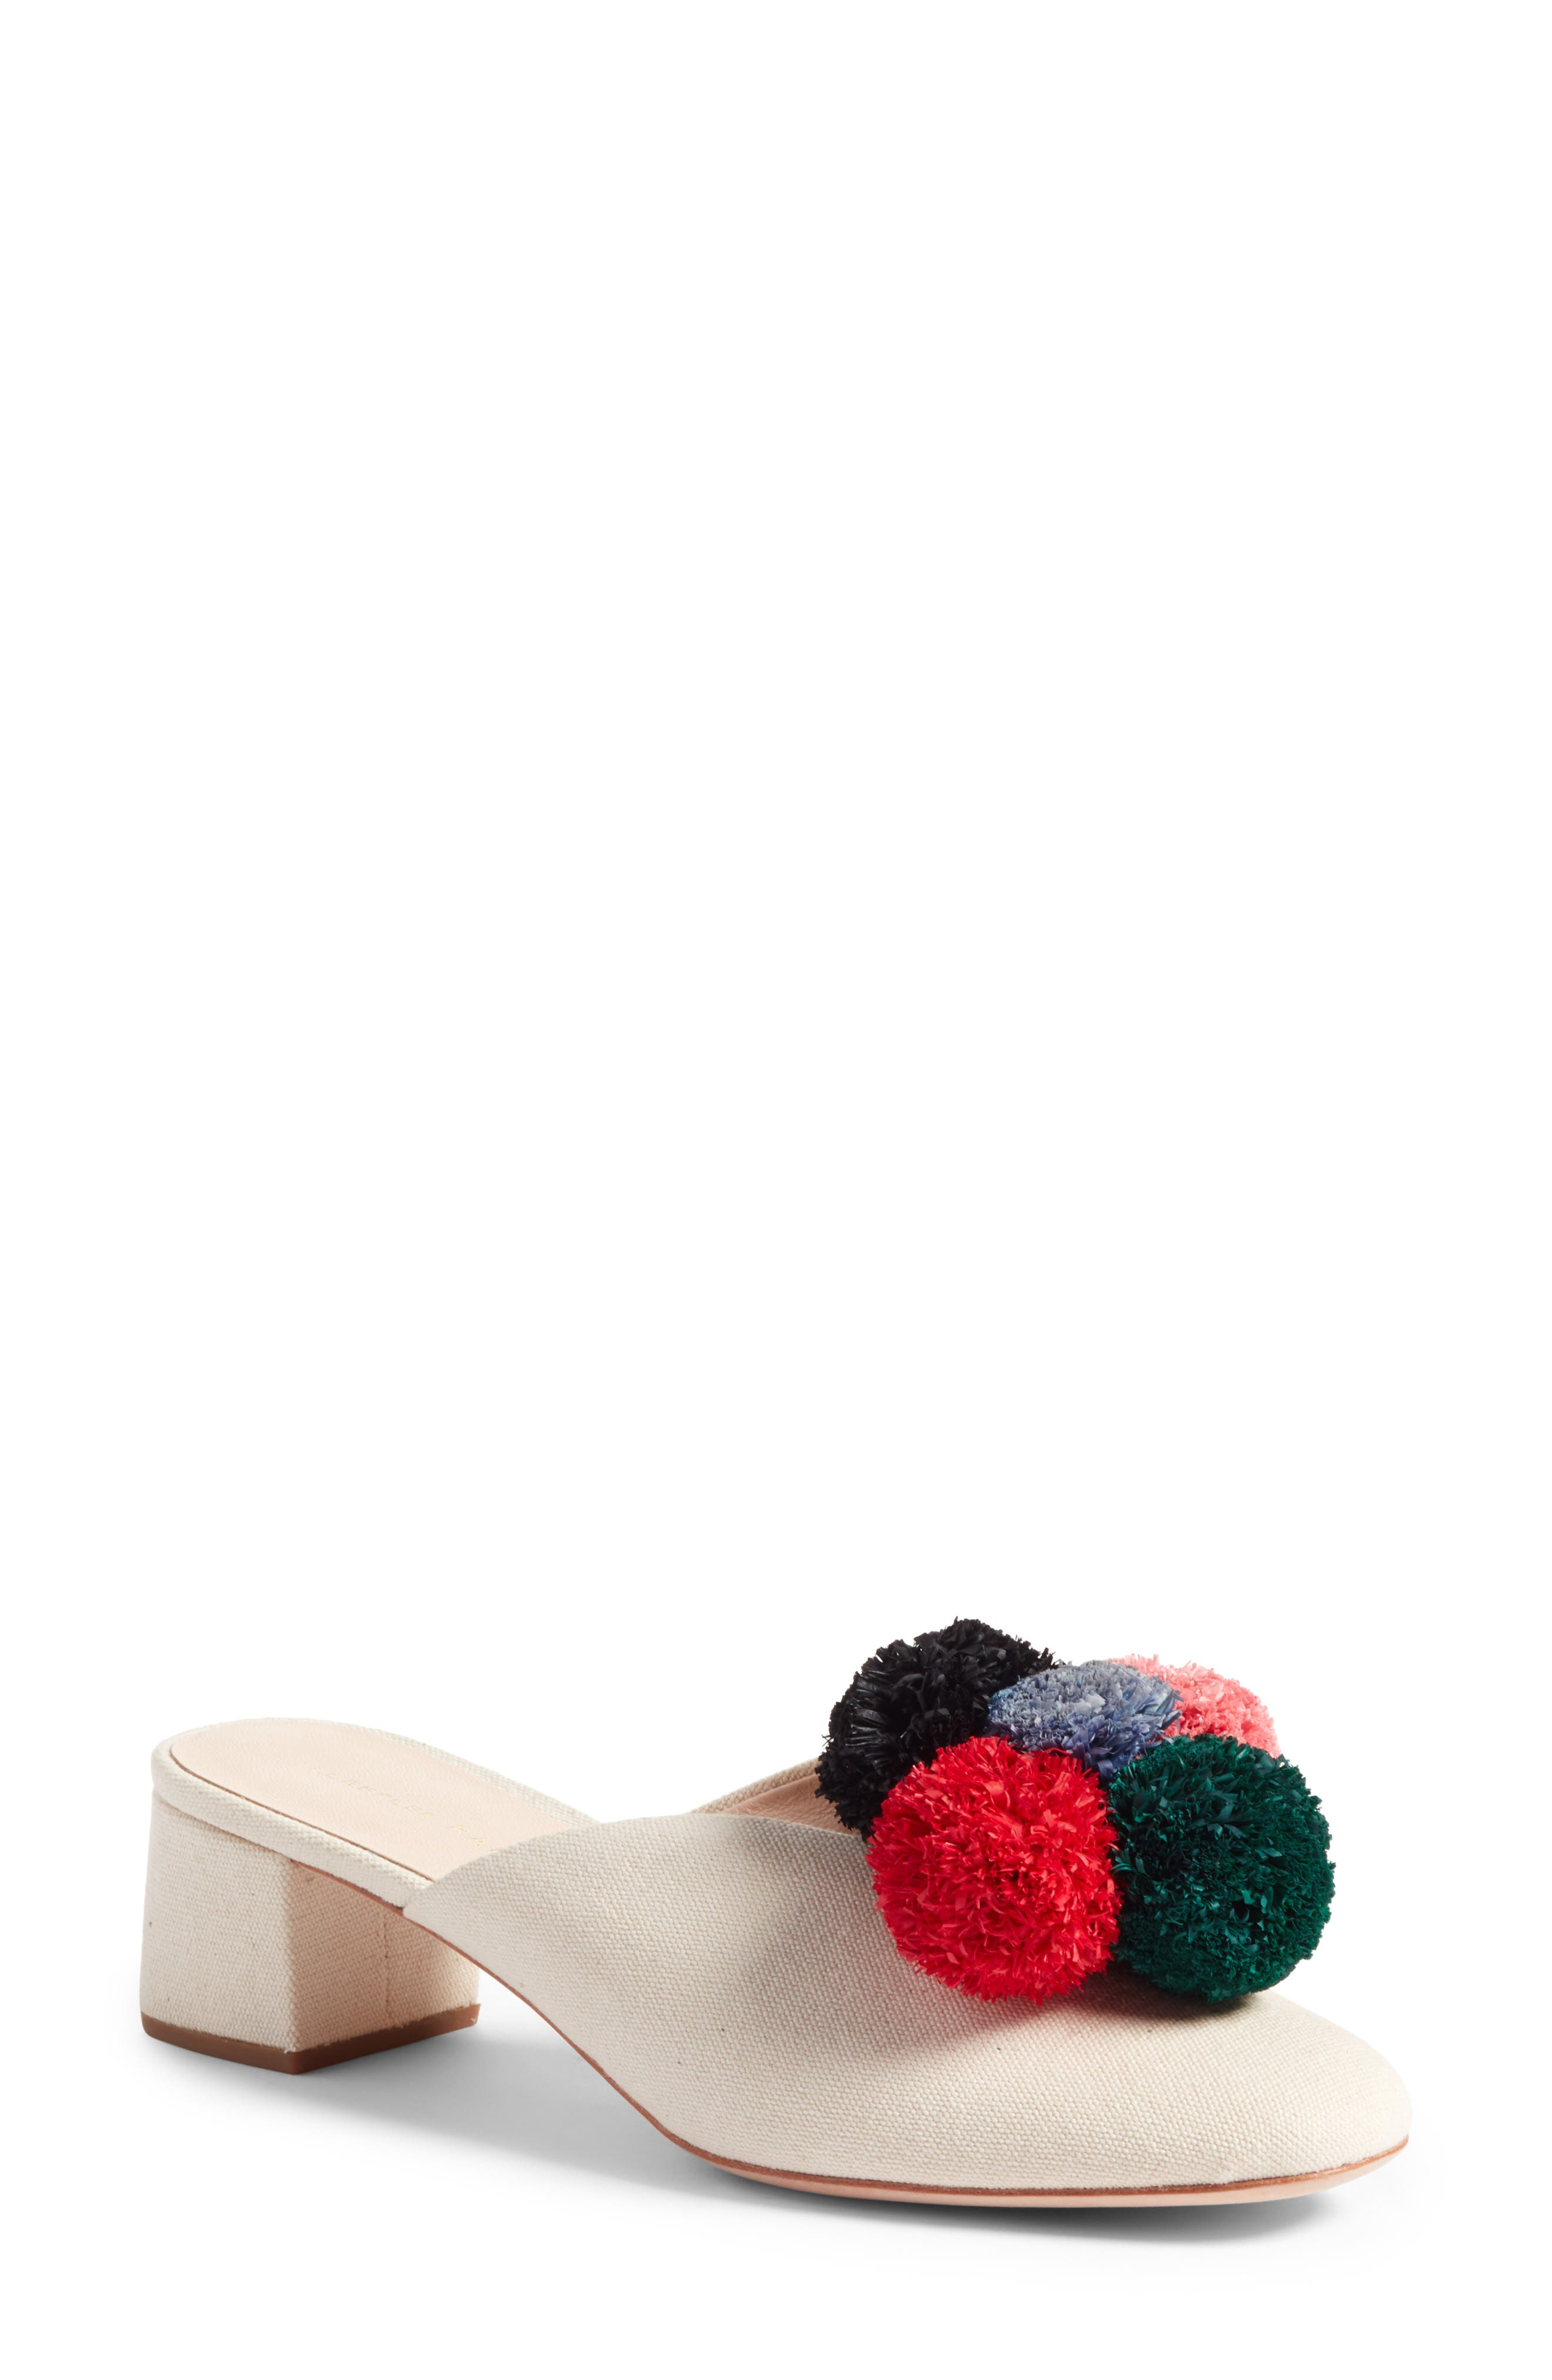 Lulu Pom Block Heel Mule,                         Main,                         color, Natural/ Multi